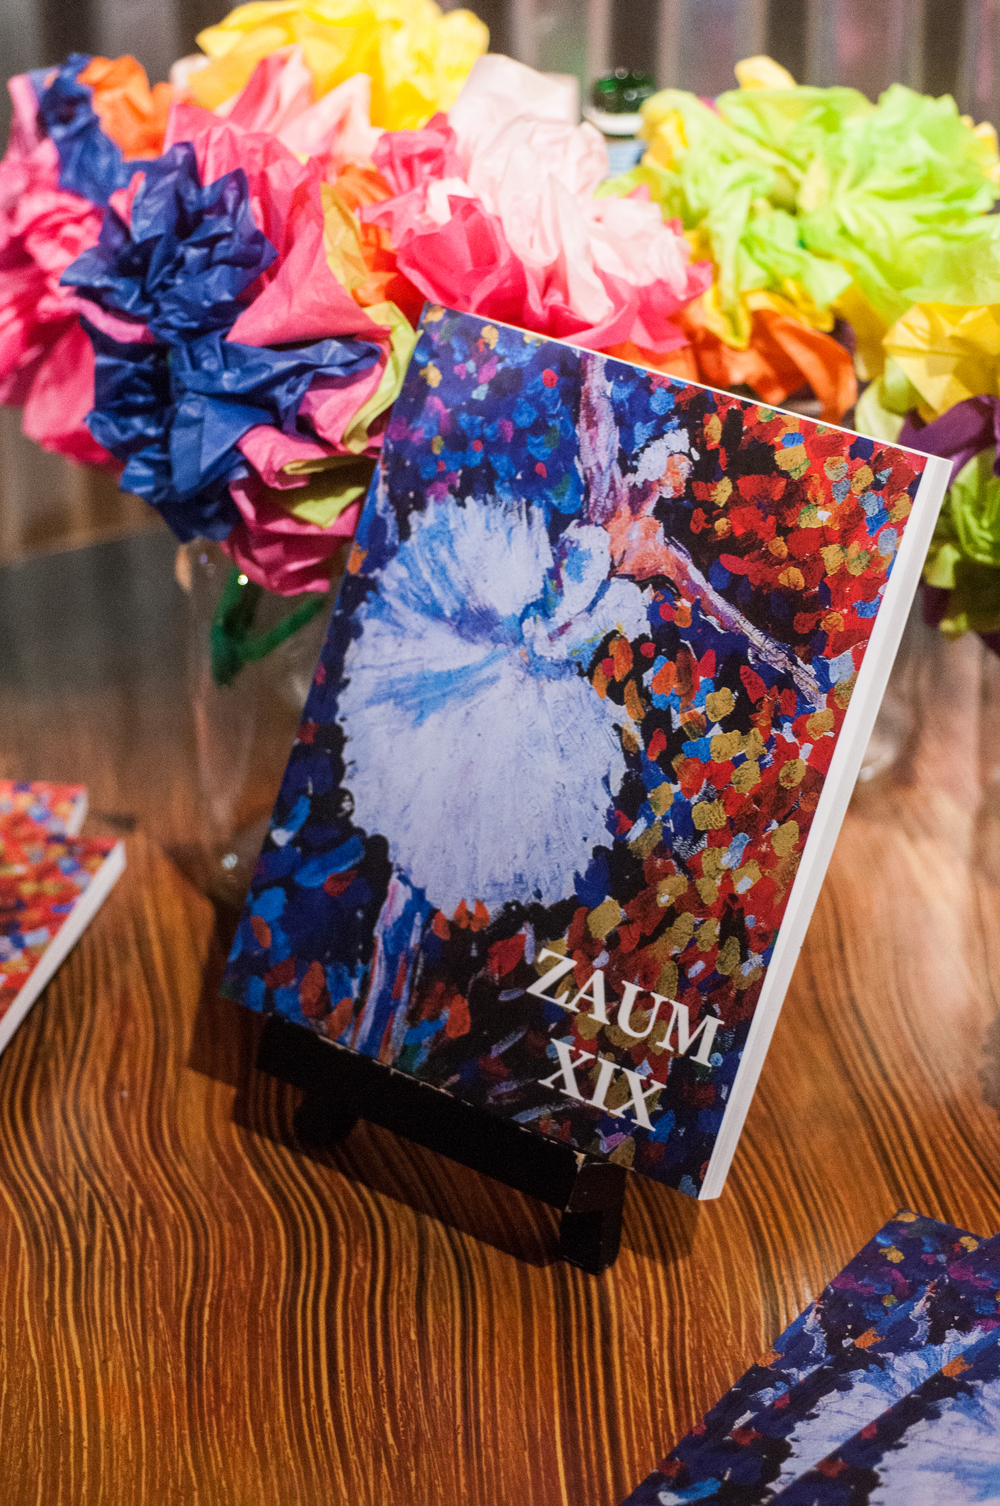 Zaum Press of Sonoma State hosted their annual gala for the second time in a row at Redwood Cafe in Cotati on Tuesday, April. 14, 2015, unveiling the newest print edition, Zaum 19 and their digital addition, Zaum XS